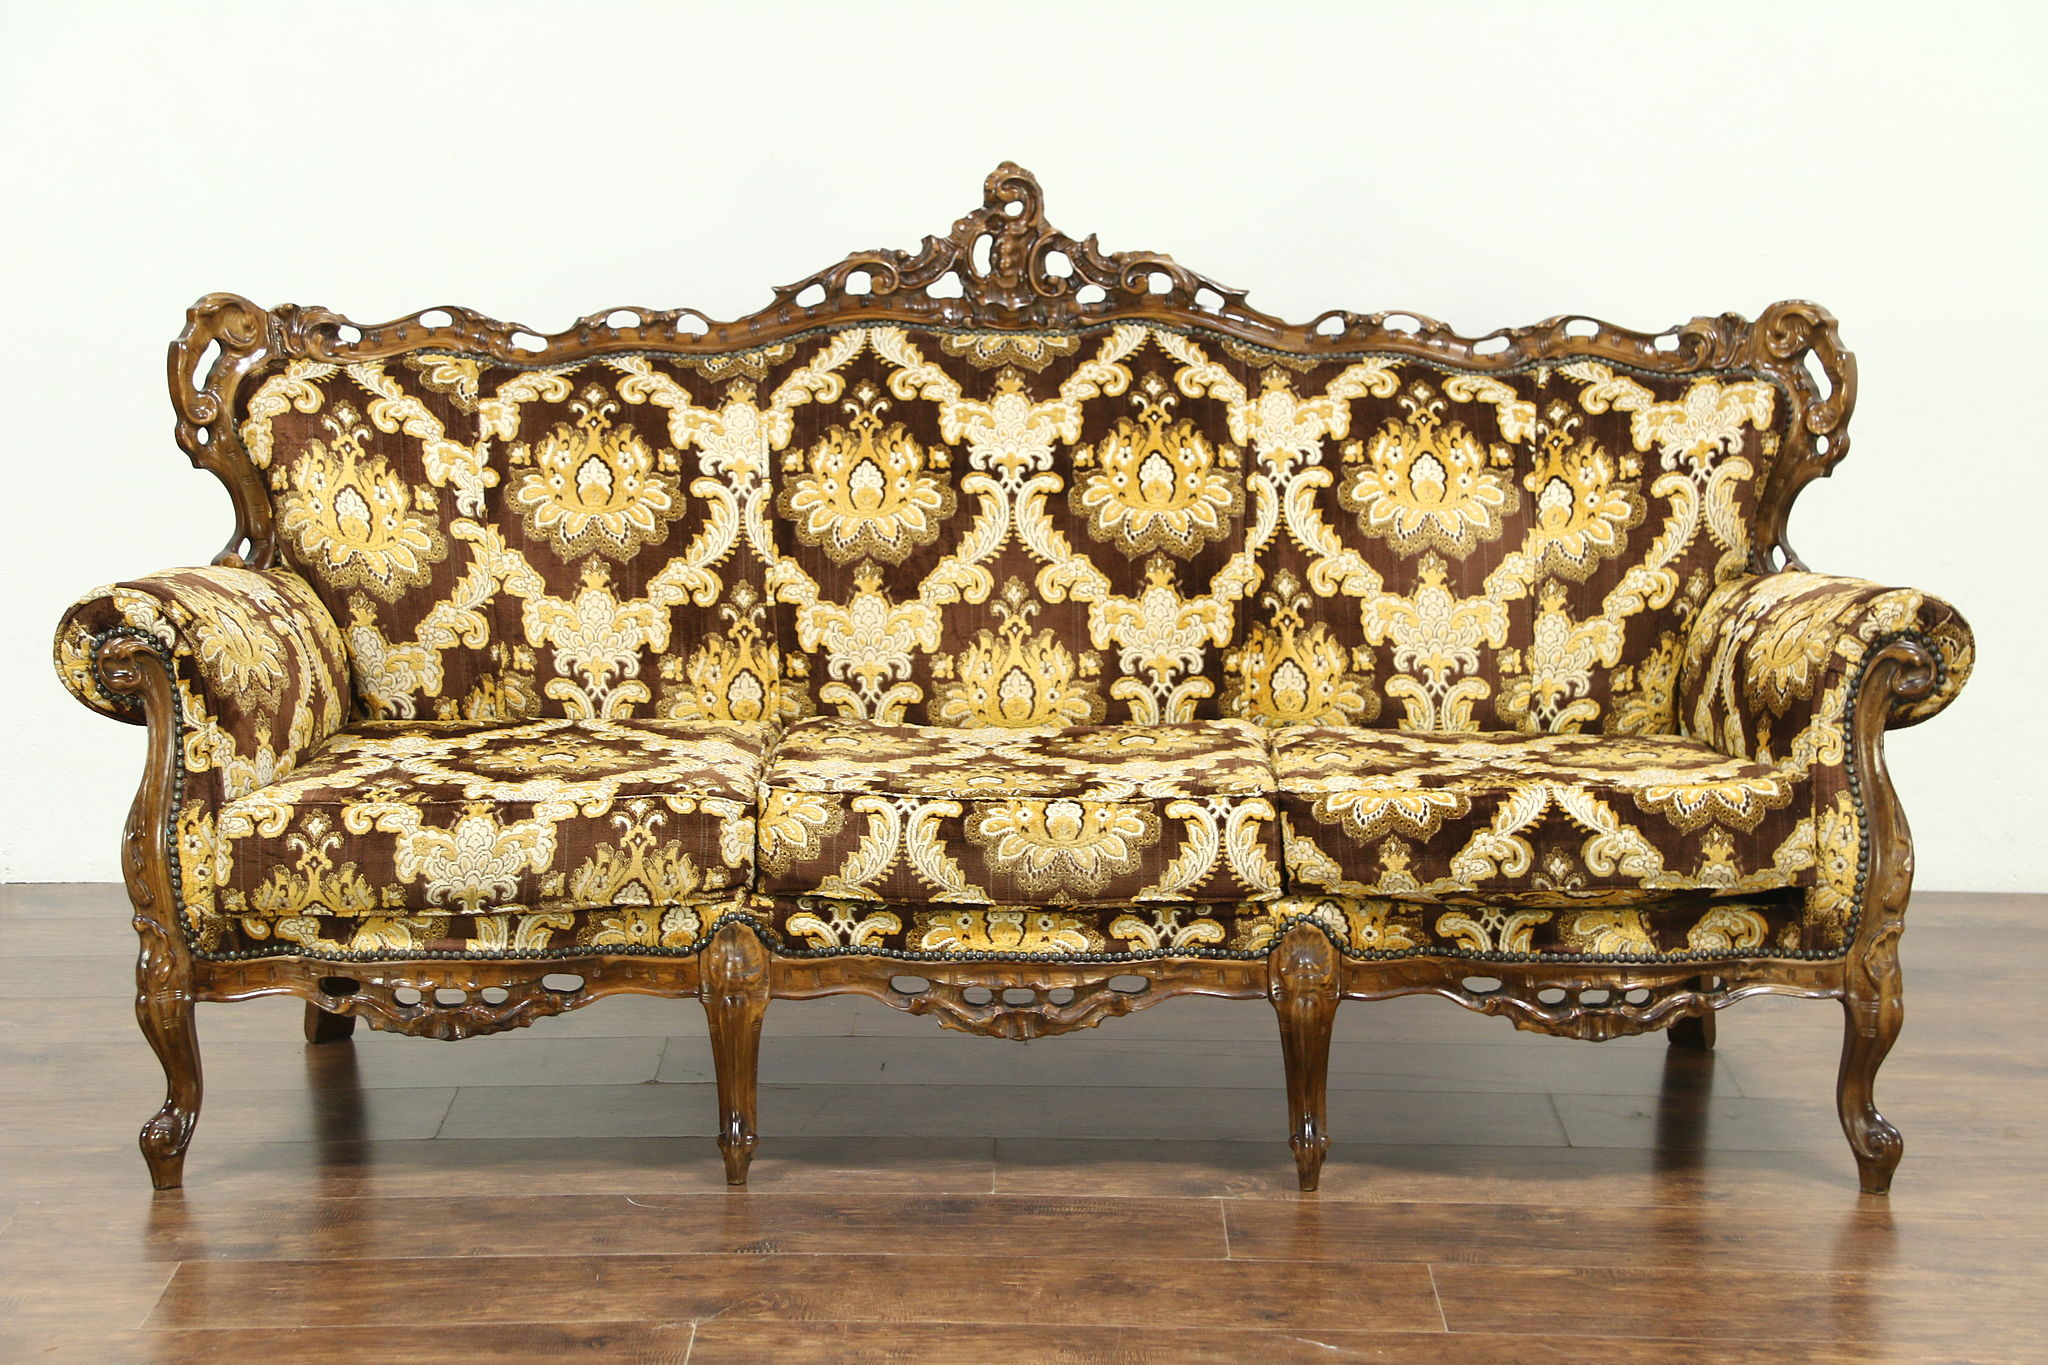 Charmant Baroque Style Large Carved Fruitwood Vintage Sofa, Italy